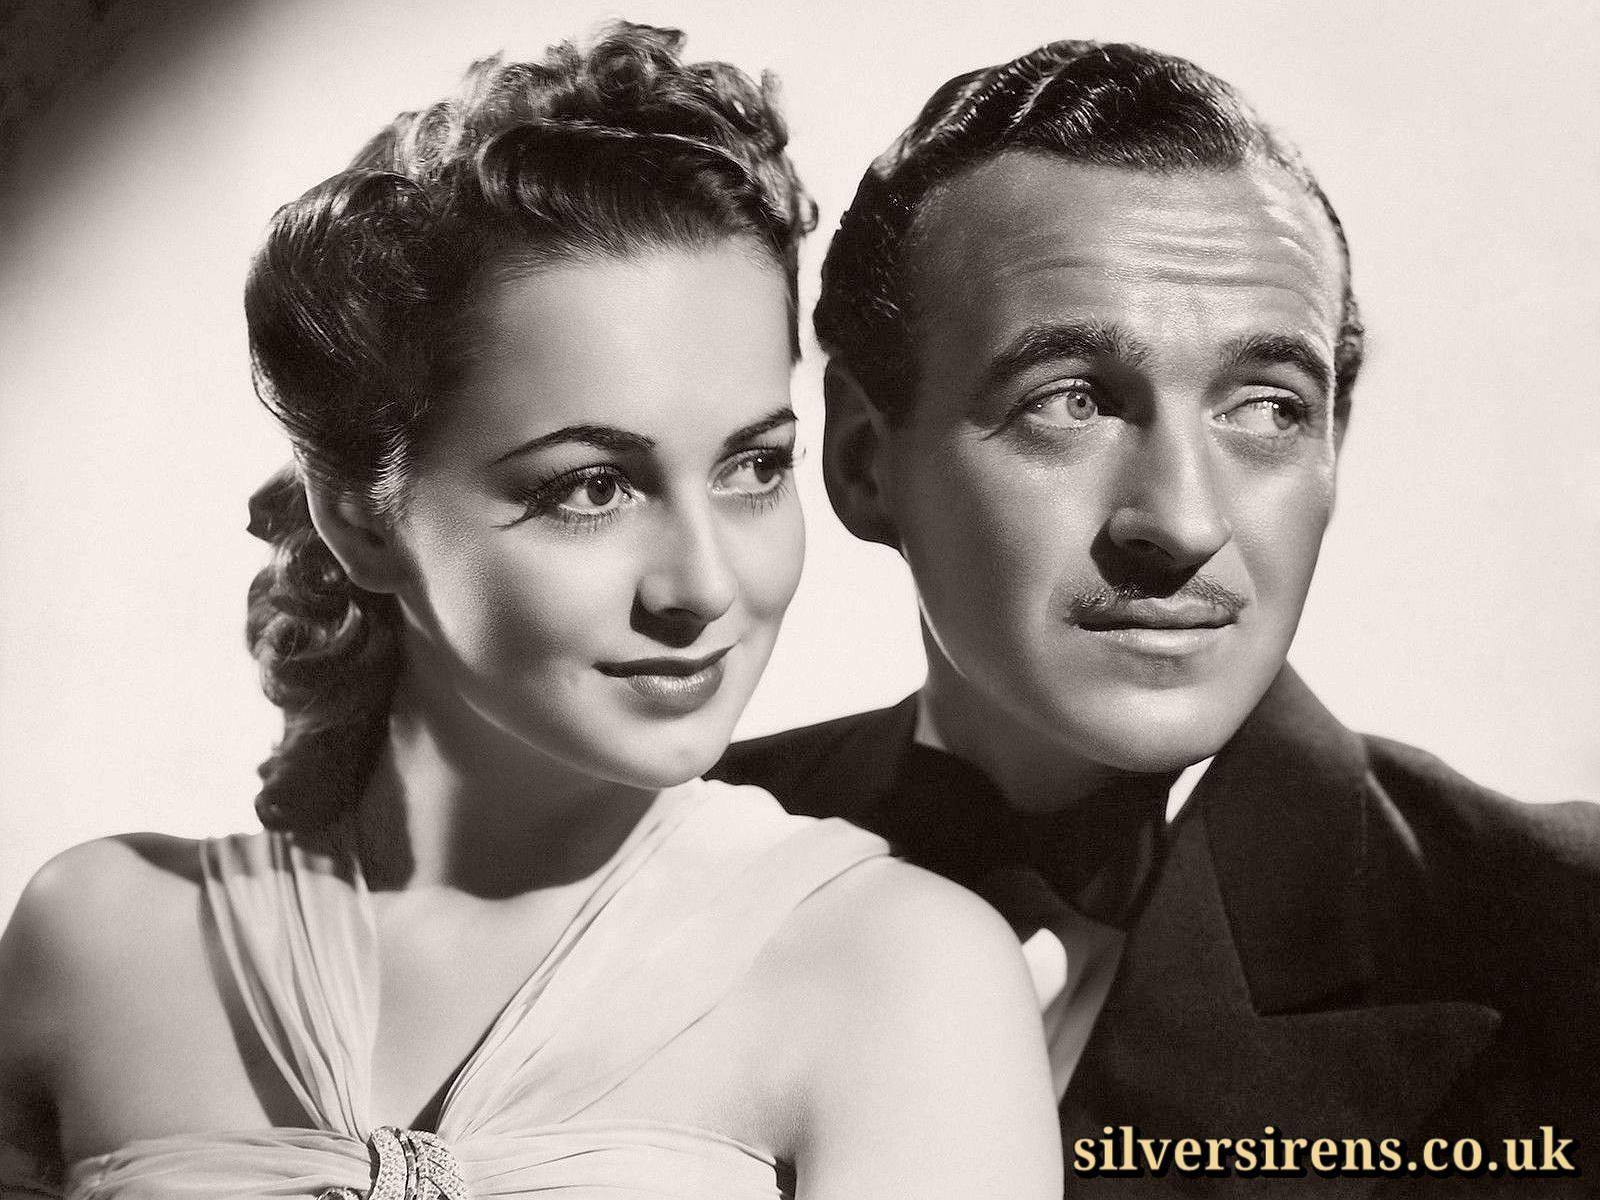 David Niven as Raffles, and Olivia de Havilland as Gwen, in a promotional shot for Raffles (1939)